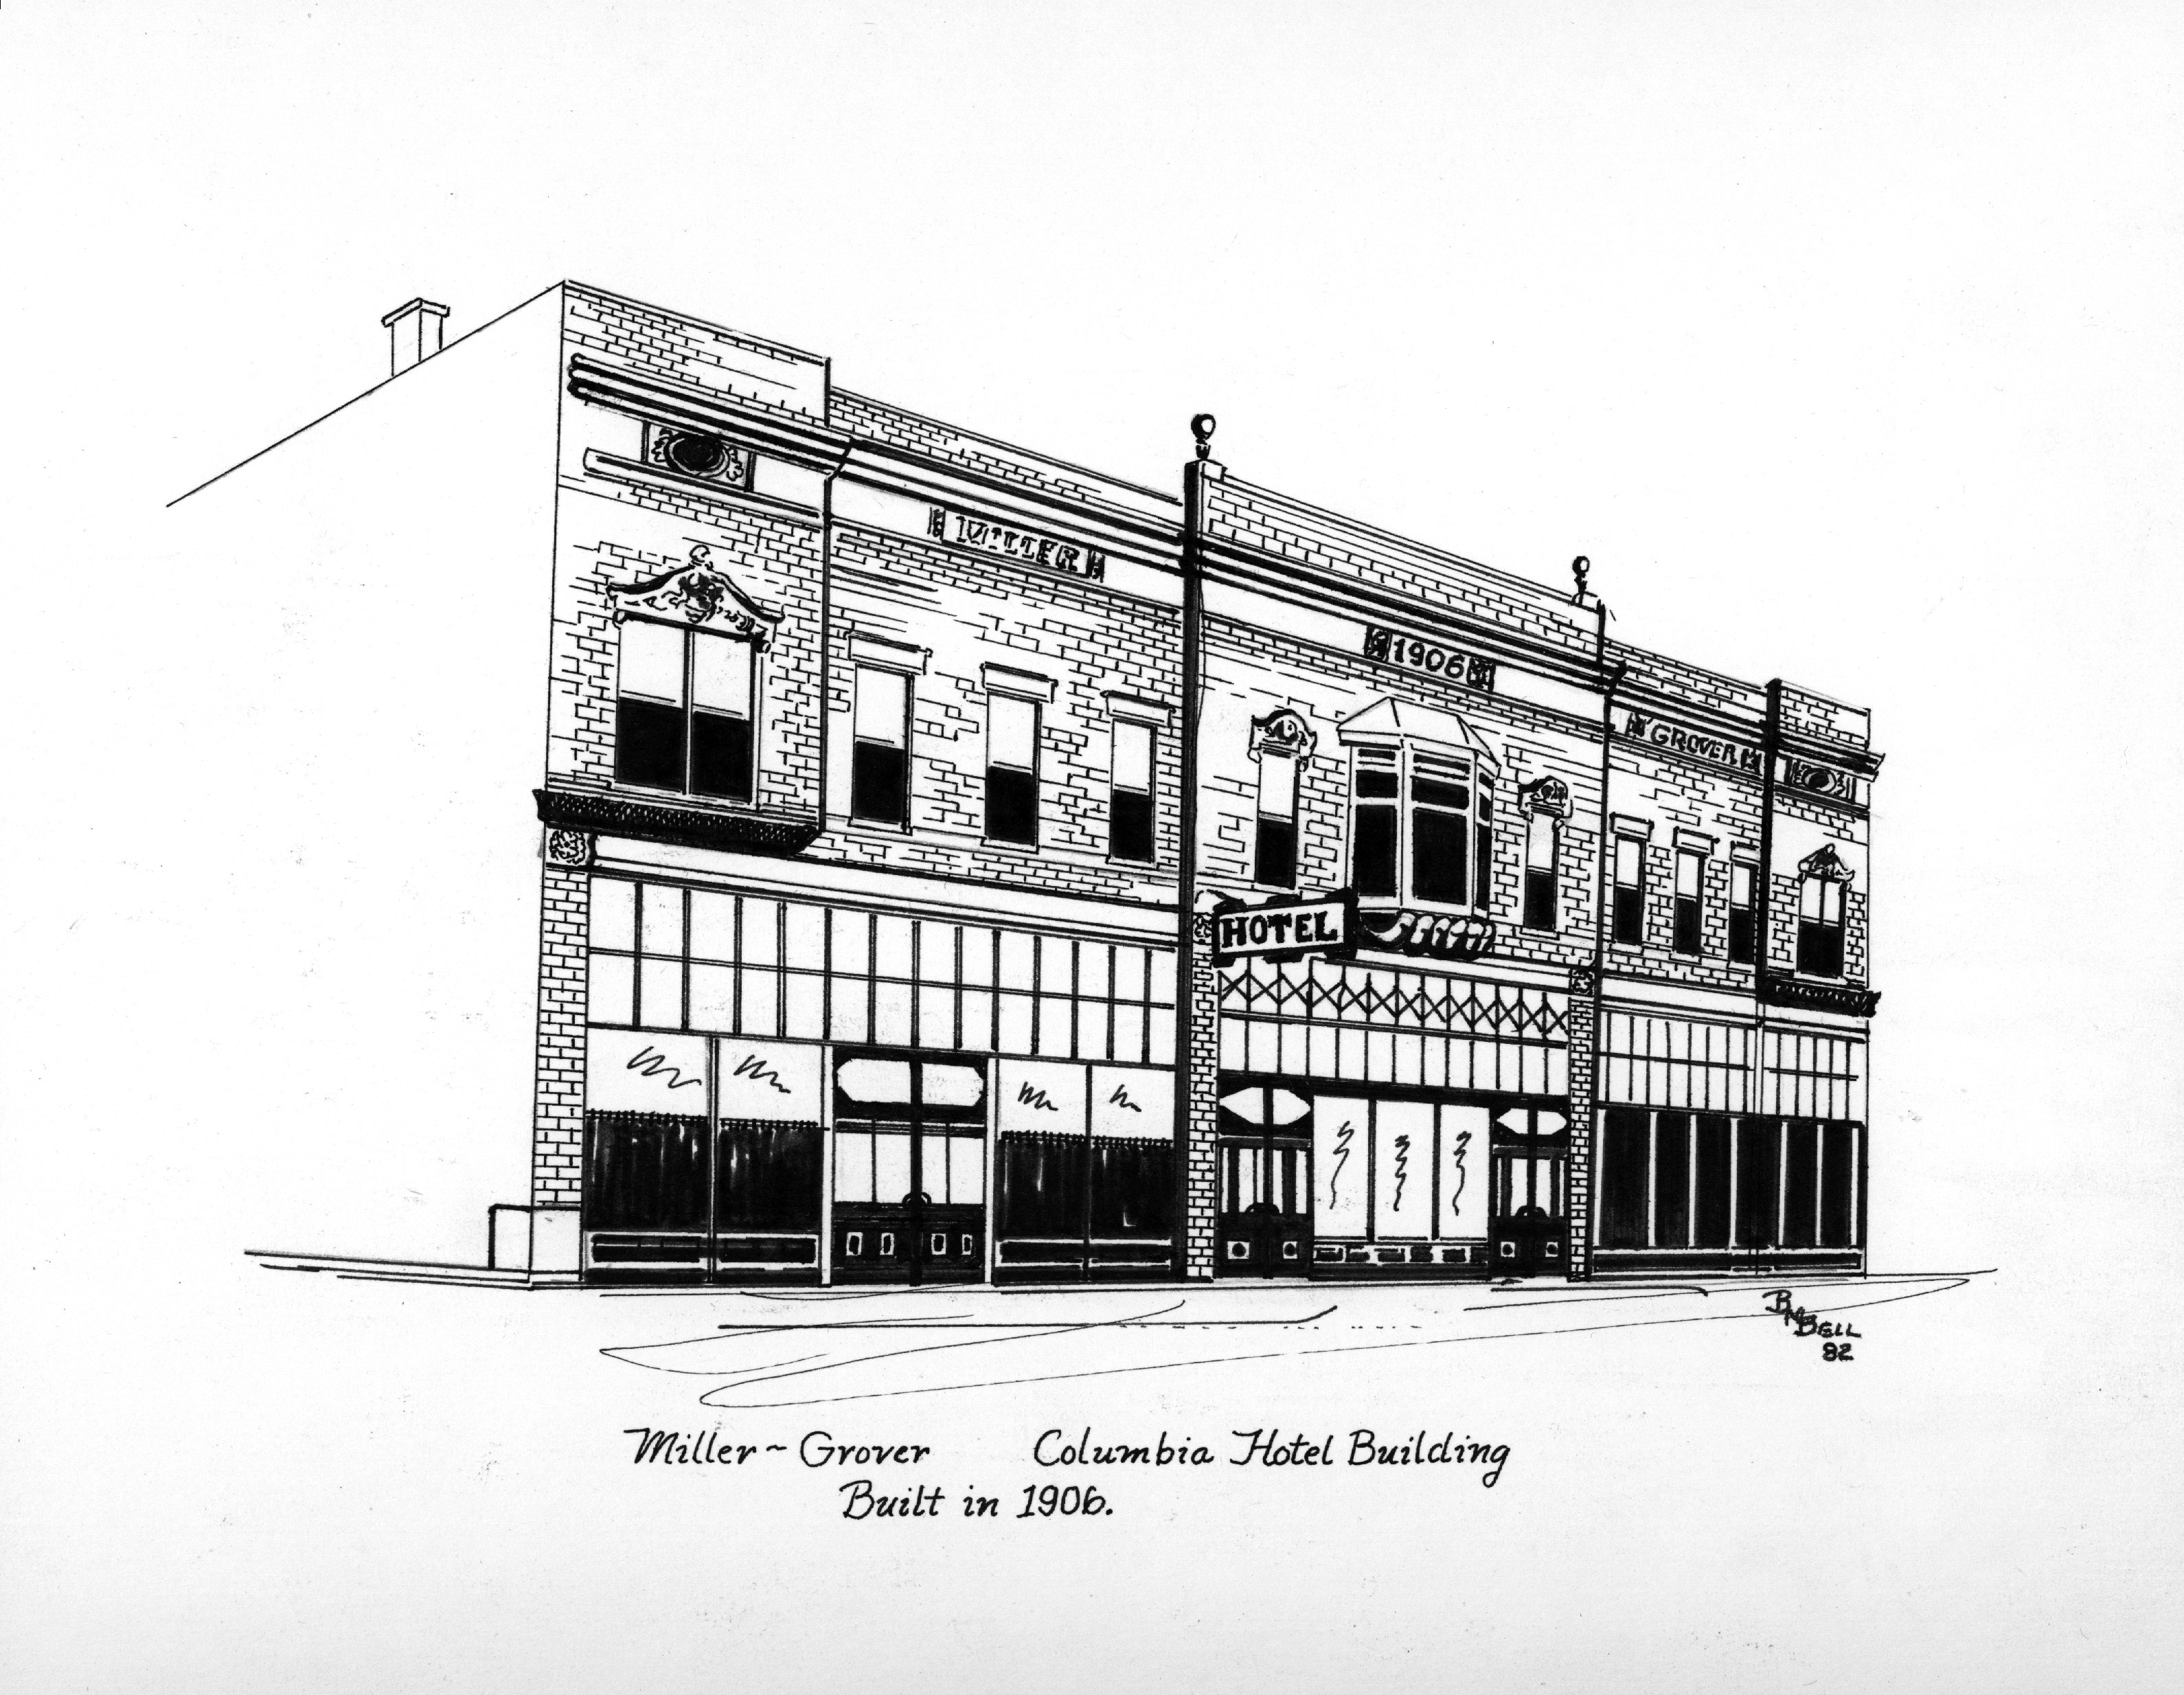 Illustration by artist Betty Bell of the Original Elman Hotel.